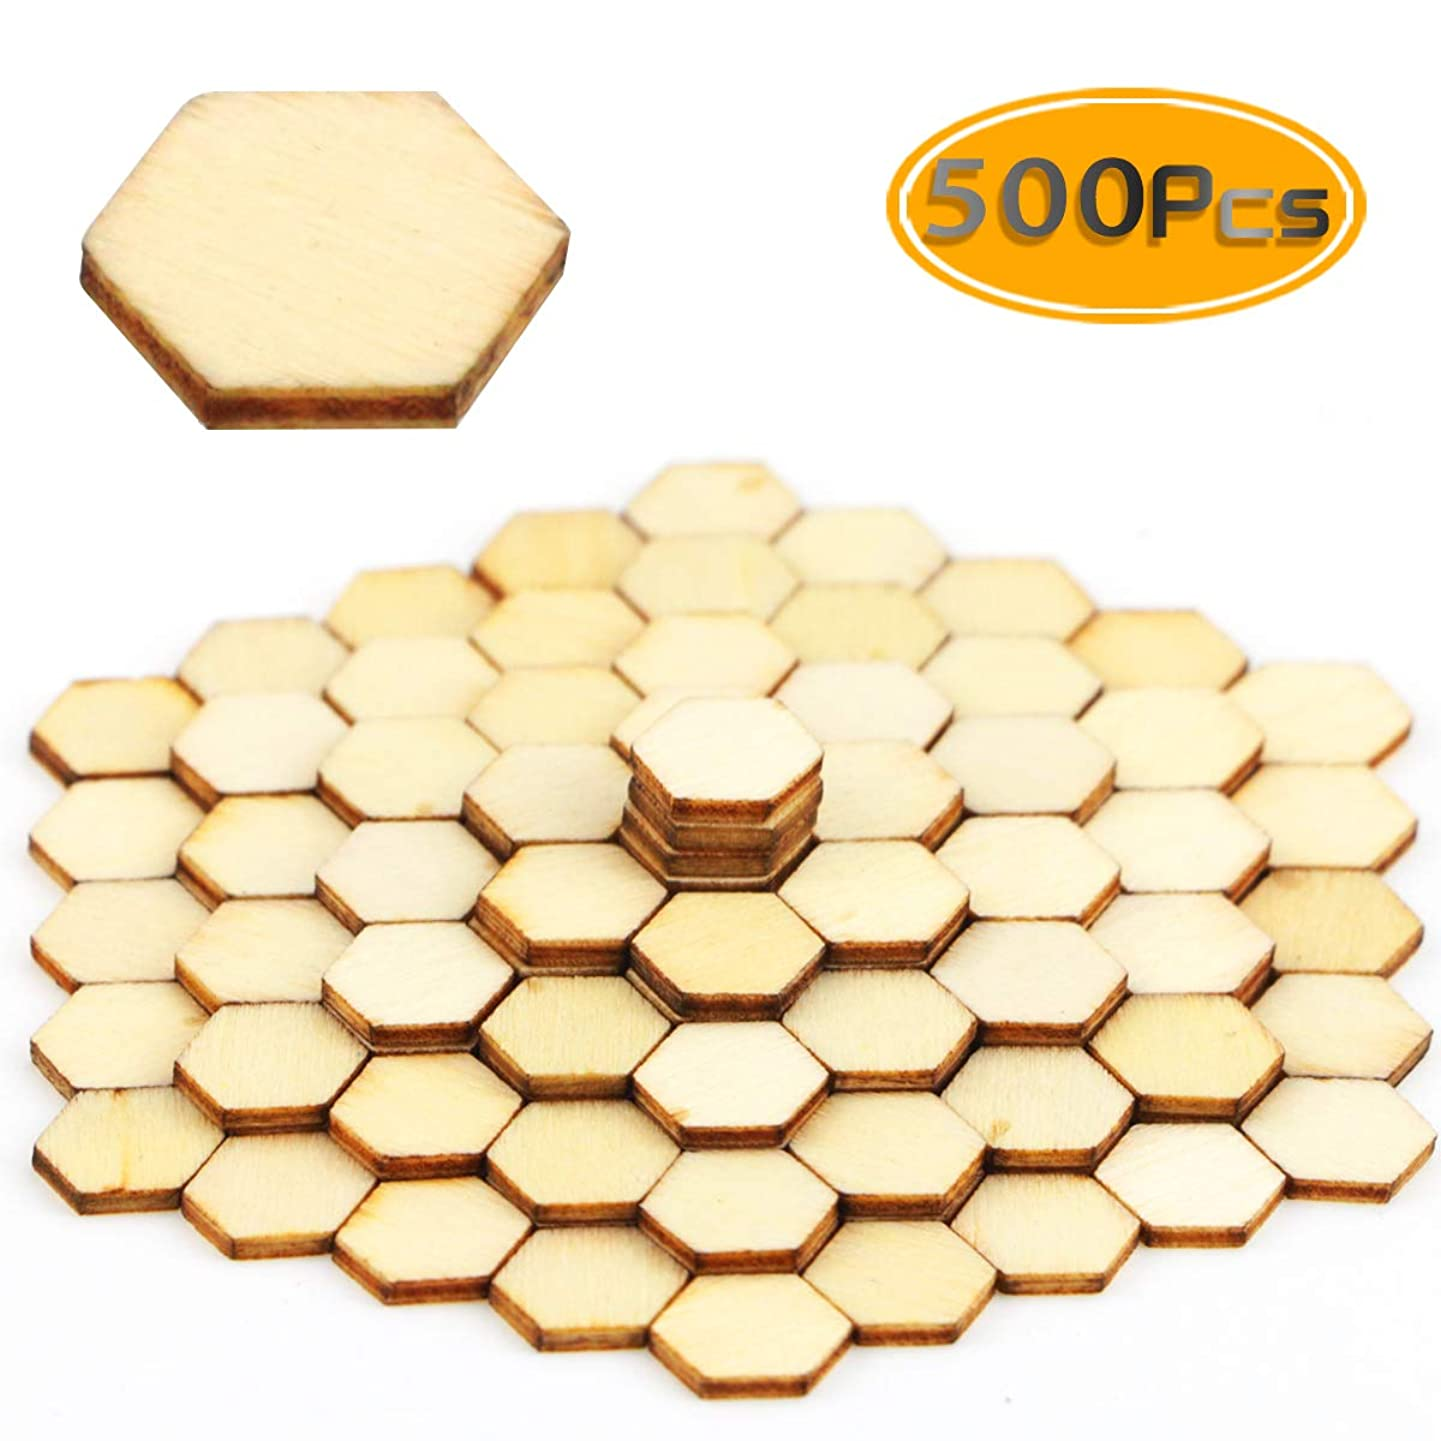 BcPowr 500 PCS 10mm Honeycomb Wood Chips Unfinished Wood Cutout Natural Honeycomb Wood Hexagon Cutout Shapes Unfinished Wood